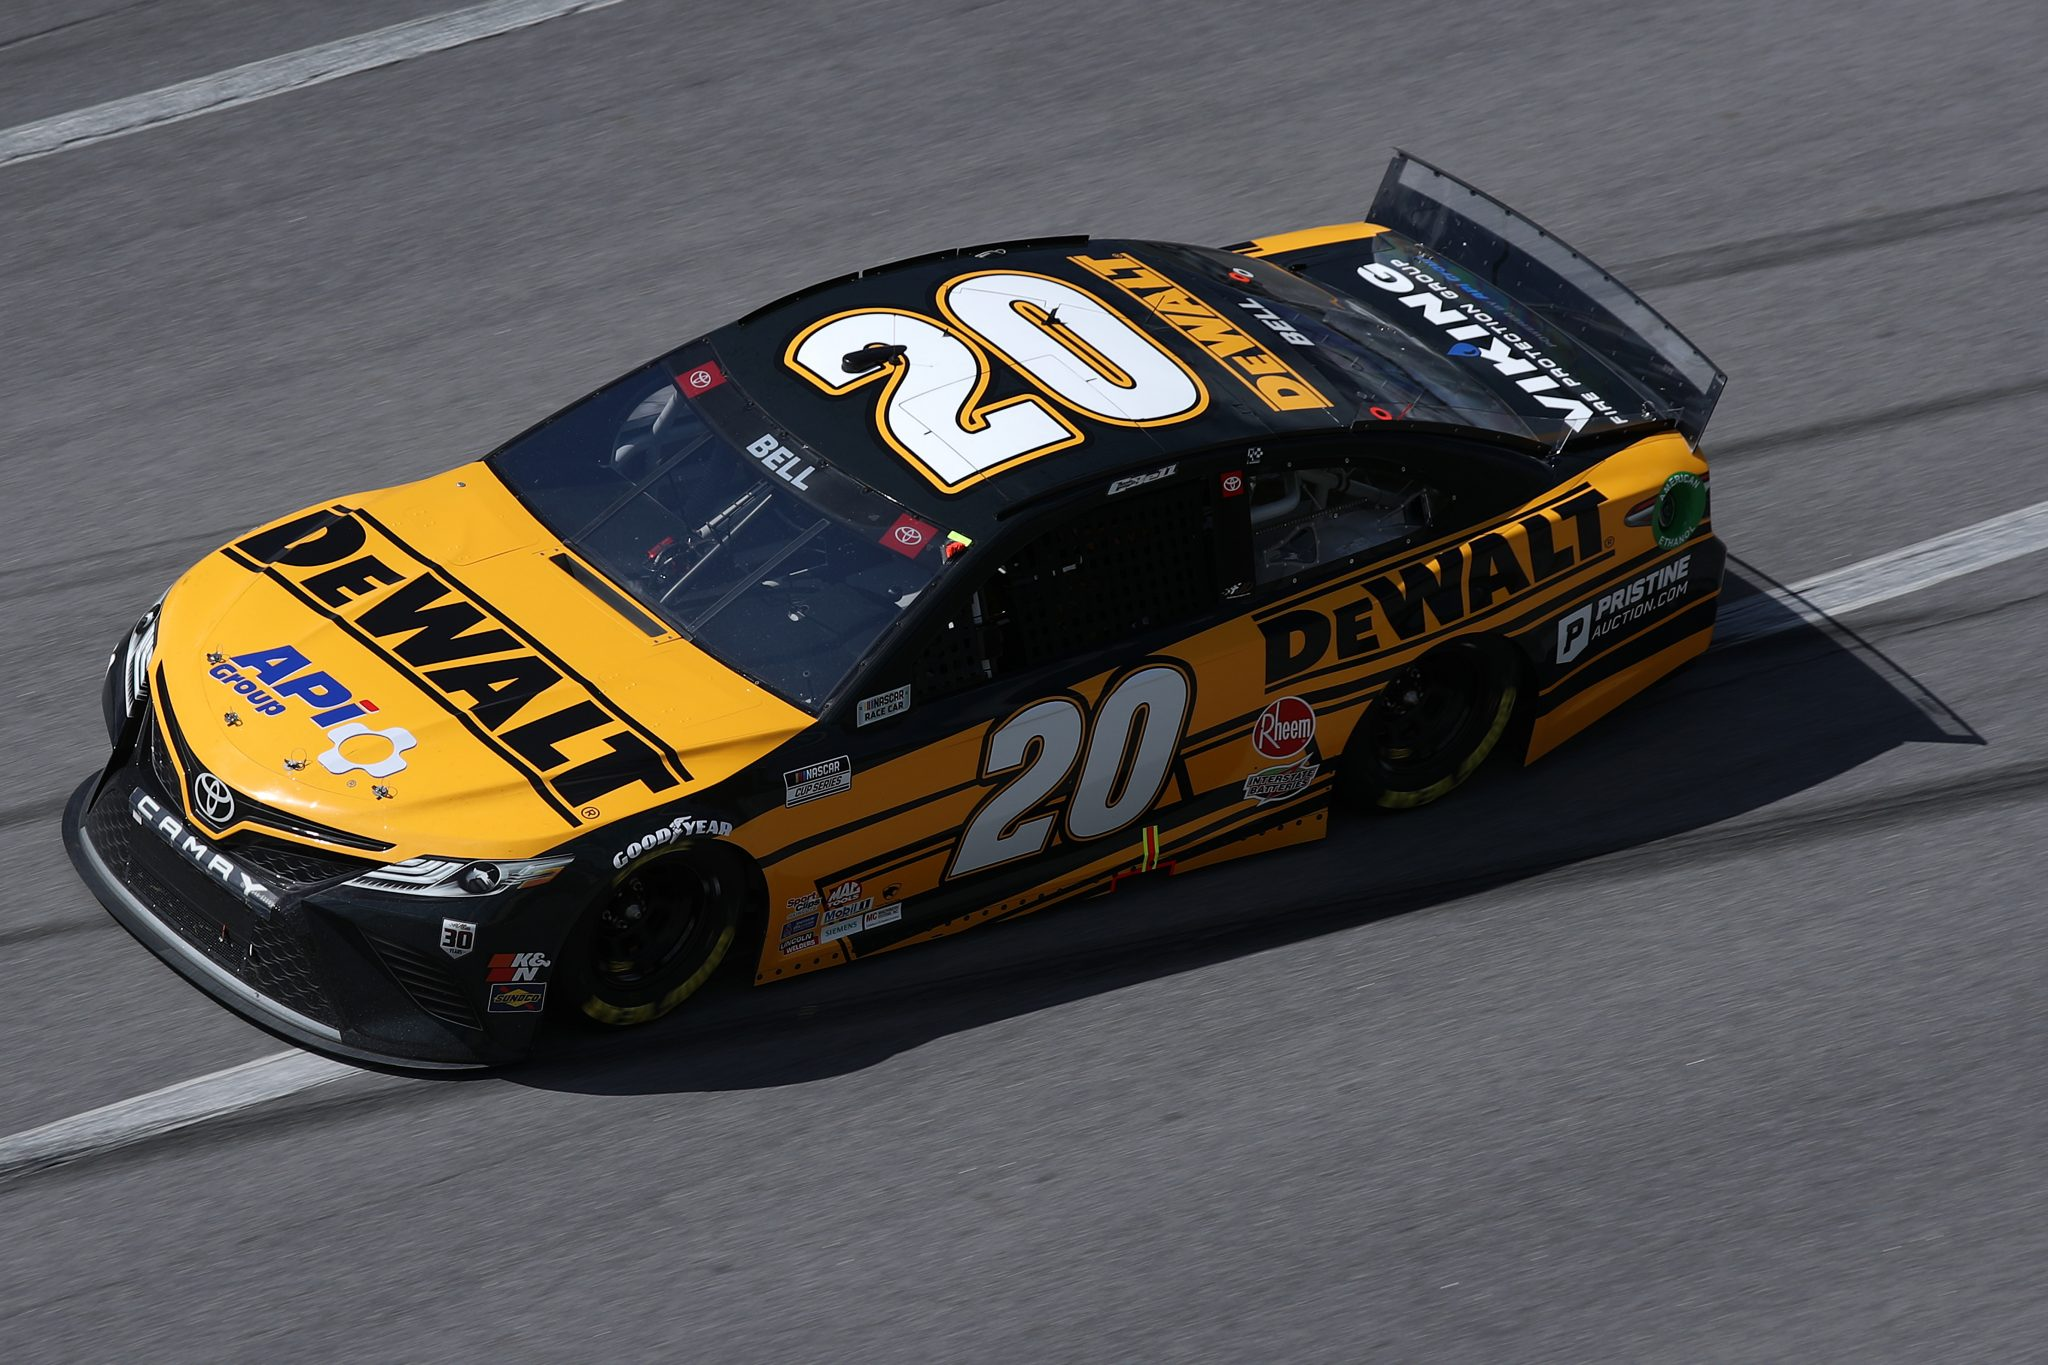 TALLADEGA, ALABAMA - APRIL 25: Christopher Bell, driver of the #20 DEWALT Toyota, drives during the NASCAR Cup Series GEICO 500 at Talladega Superspeedway on April 25, 2021 in Talladega, Alabama. (Photo by Sean Gardner/Getty Images) | Getty Images